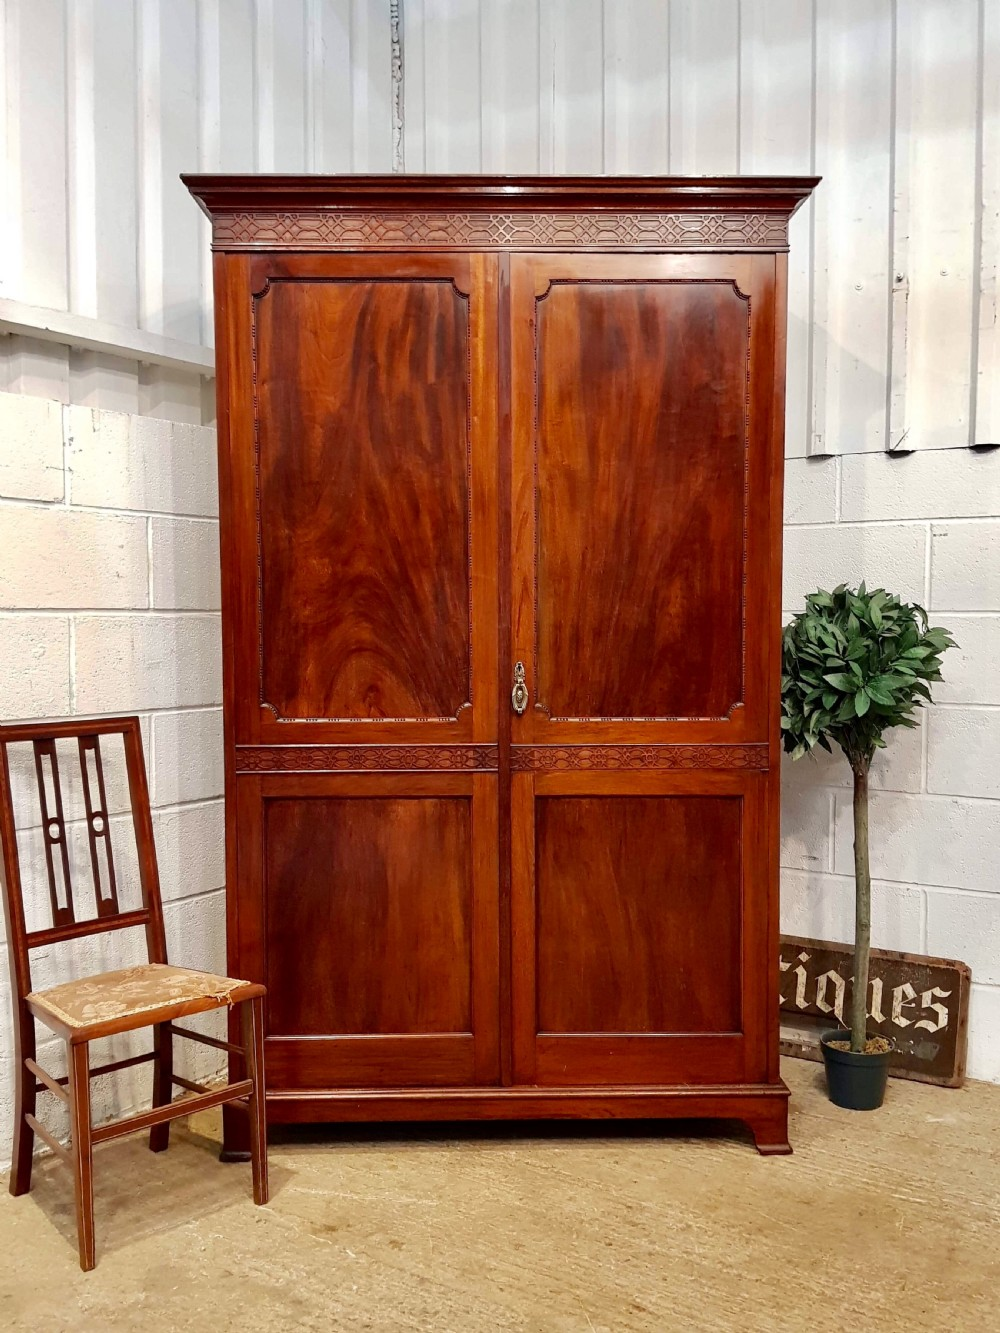 antique edwardian chippendale mahogany double wardrobe c1900